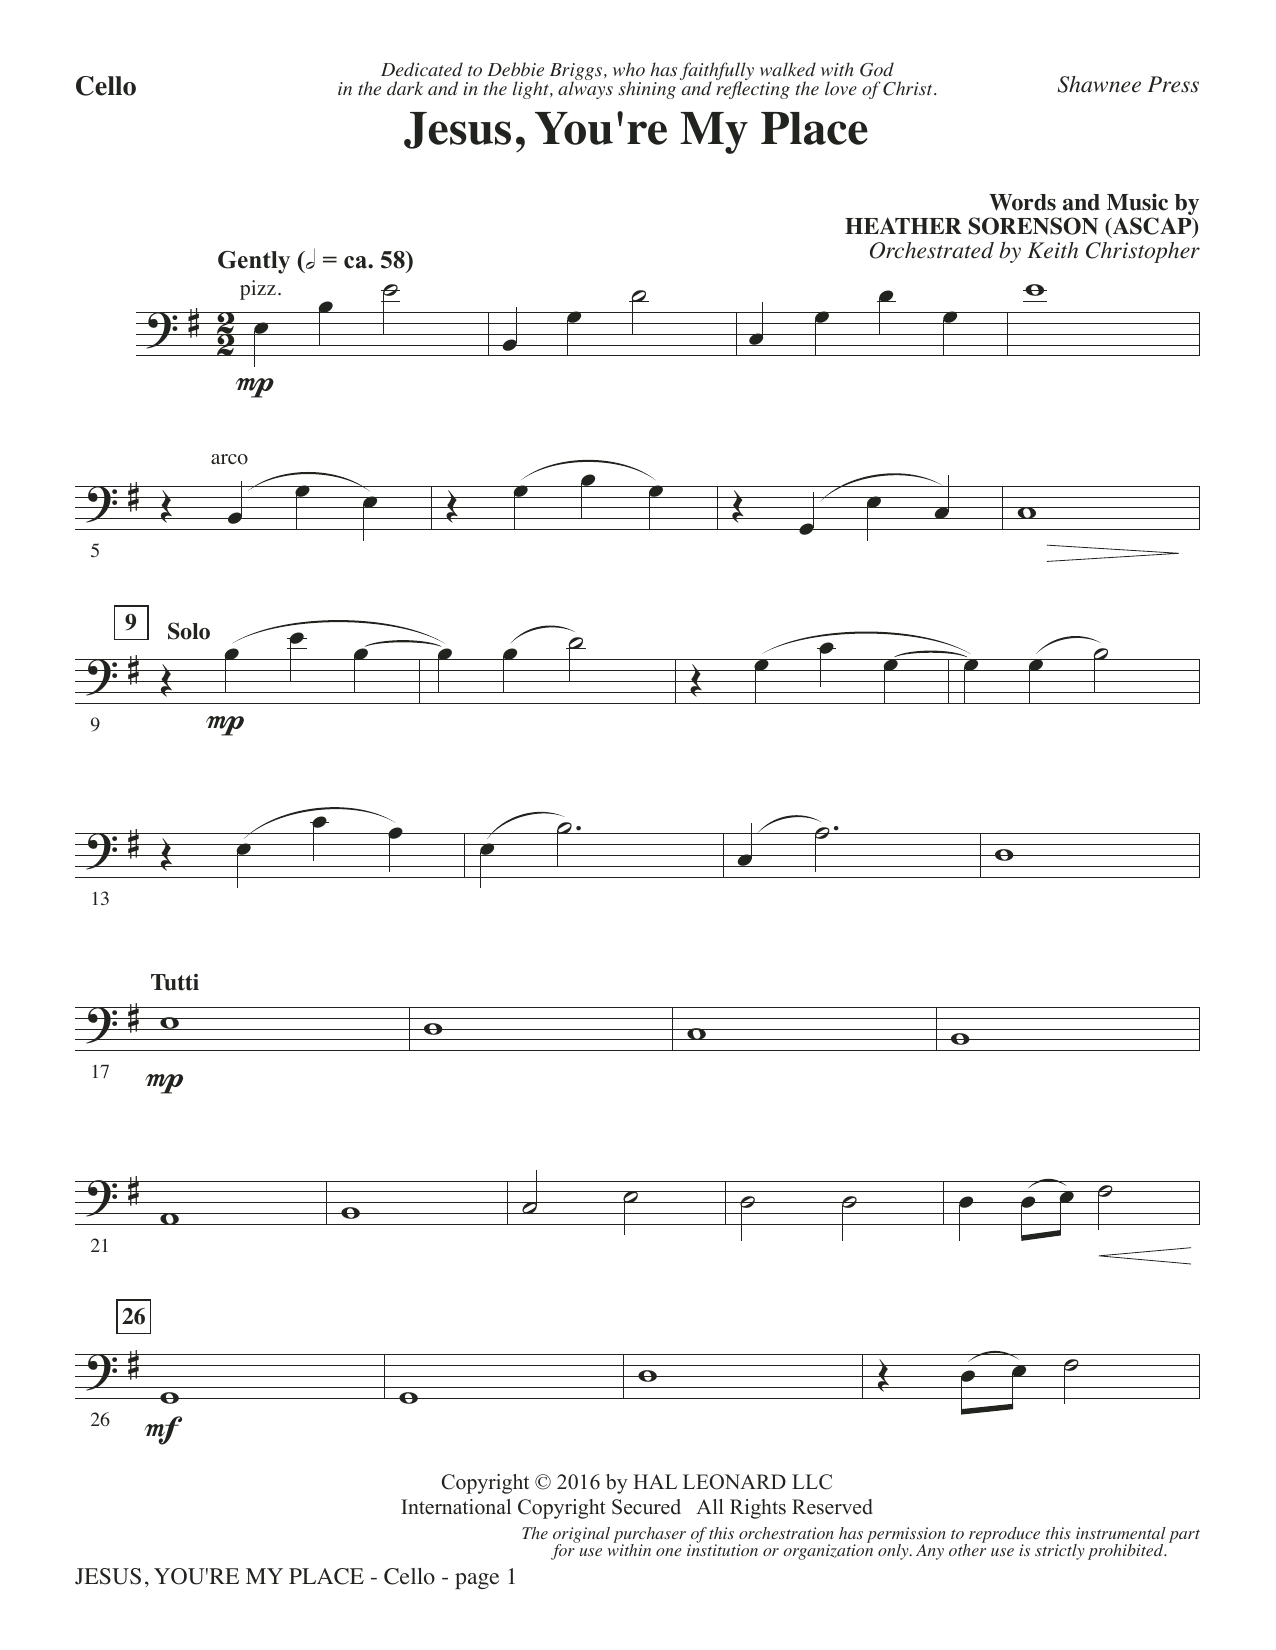 Jesus, You're My Place - Cello Sheet Music